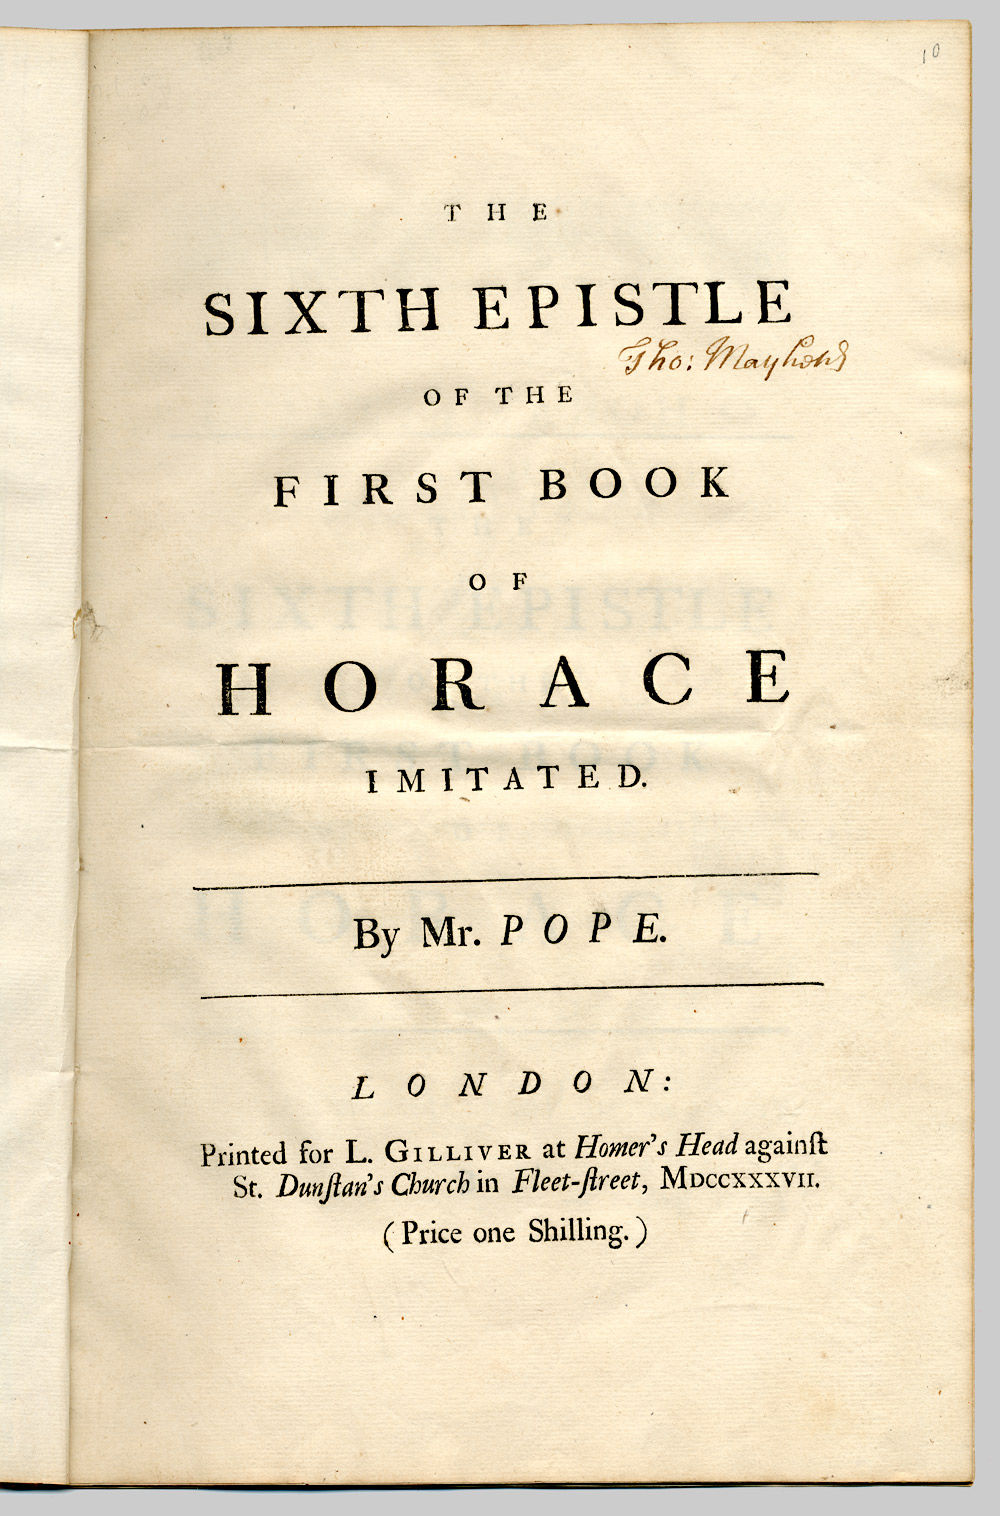 the first epistle of the second book of horace imitated Thus, or near this manner, was horace his art of poetry translated by ben  the  third way is that of imitation, where the translator (if now he has not lost that   see for example the first and second edition of brome's the poems of horace,.